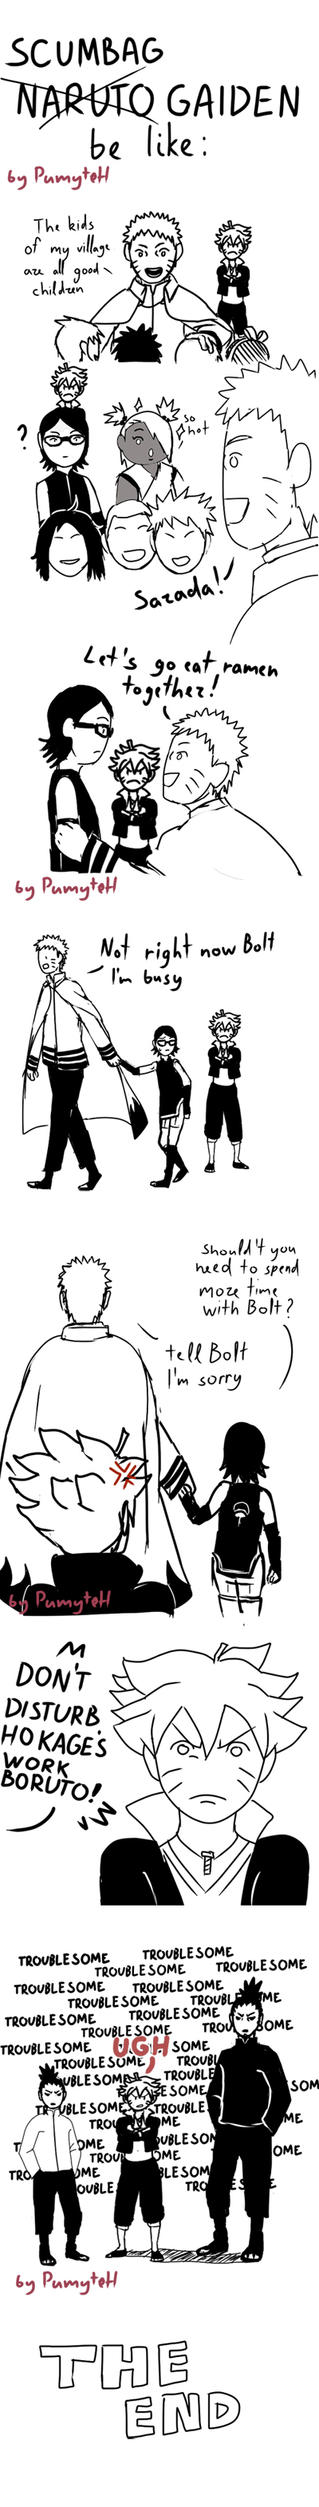 Naruto gaiden be like by PumyteH